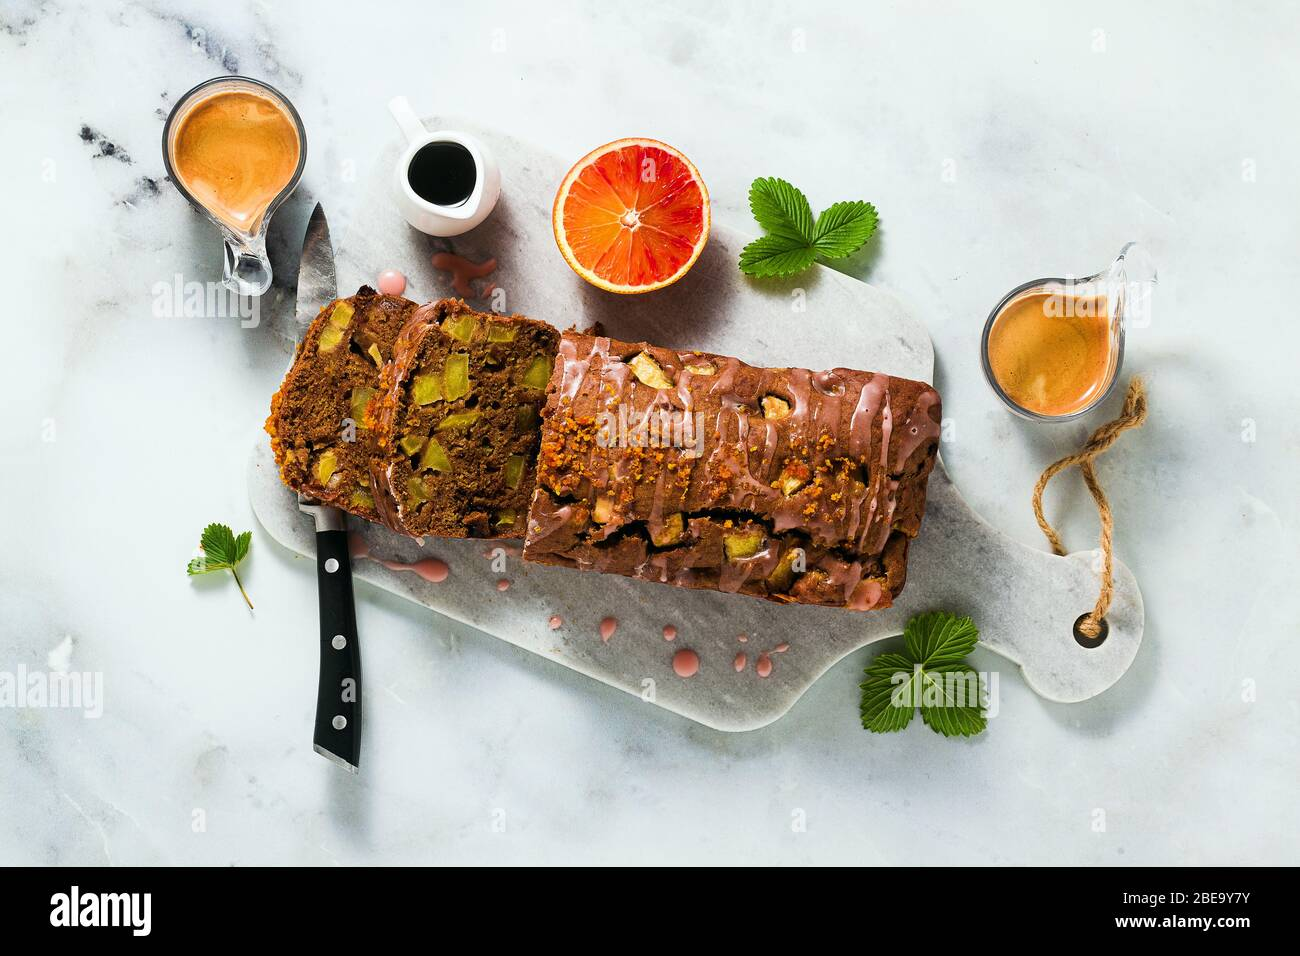 apple homemade vegan loaf cake with icing and espresso coffee. healthy morning breakfast or snack Stock Photo